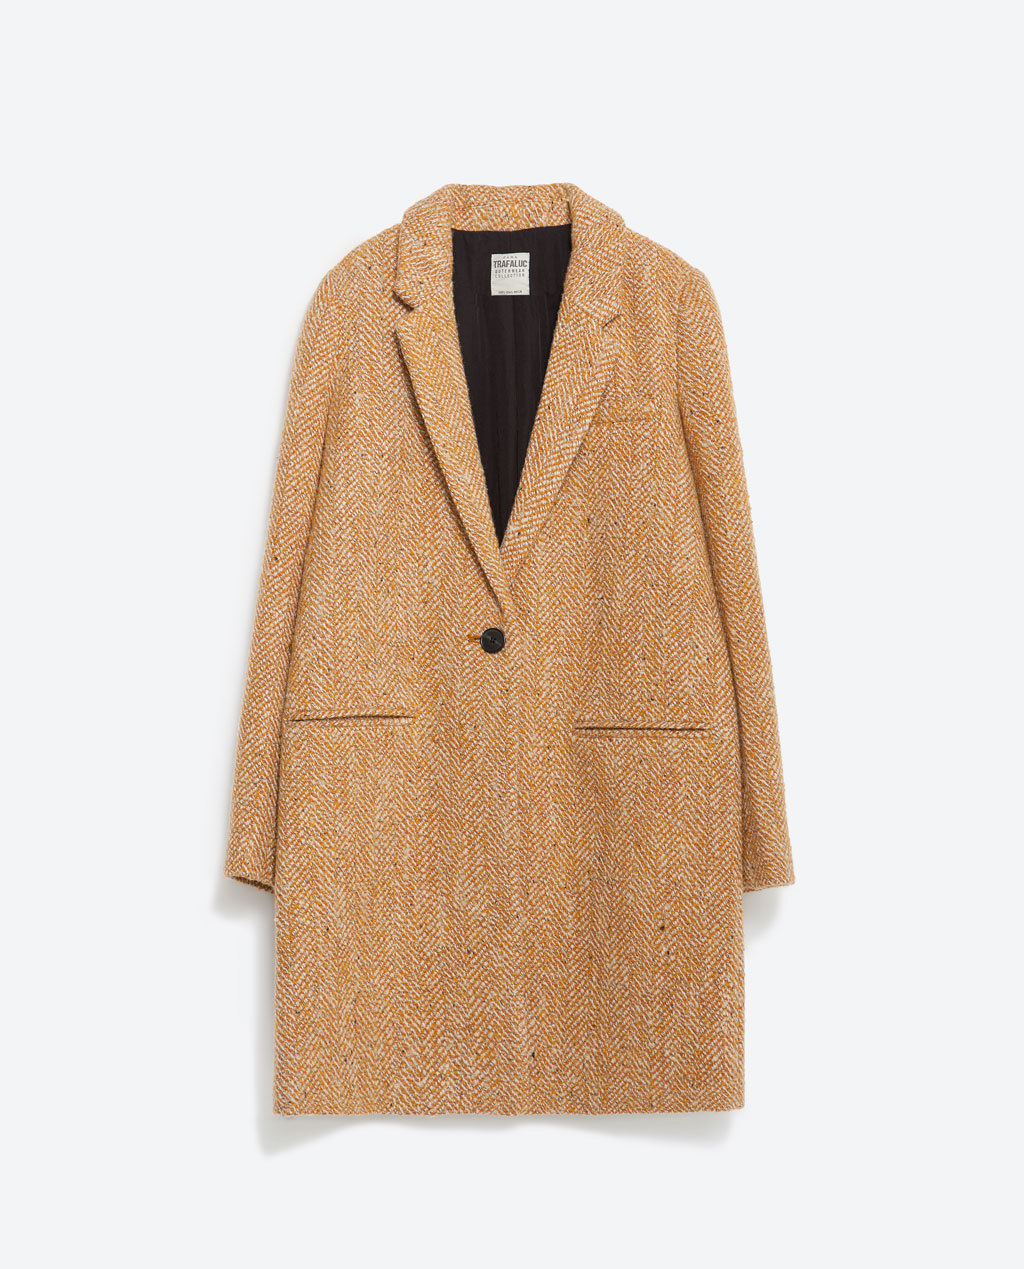 Masculine Coat - style: single breasted; collar: standard lapel/rever collar; pattern: herringbone/tweed; length: mid thigh; secondary colour: ivory/cream; predominant colour: camel; occasions: casual, creative work; fit: straight cut (boxy); fibres: wool - mix; sleeve length: long sleeve; sleeve style: standard; collar break: medium; pattern type: fabric; pattern size: standard; texture group: tweed - bulky/heavy; season: a/w 2015